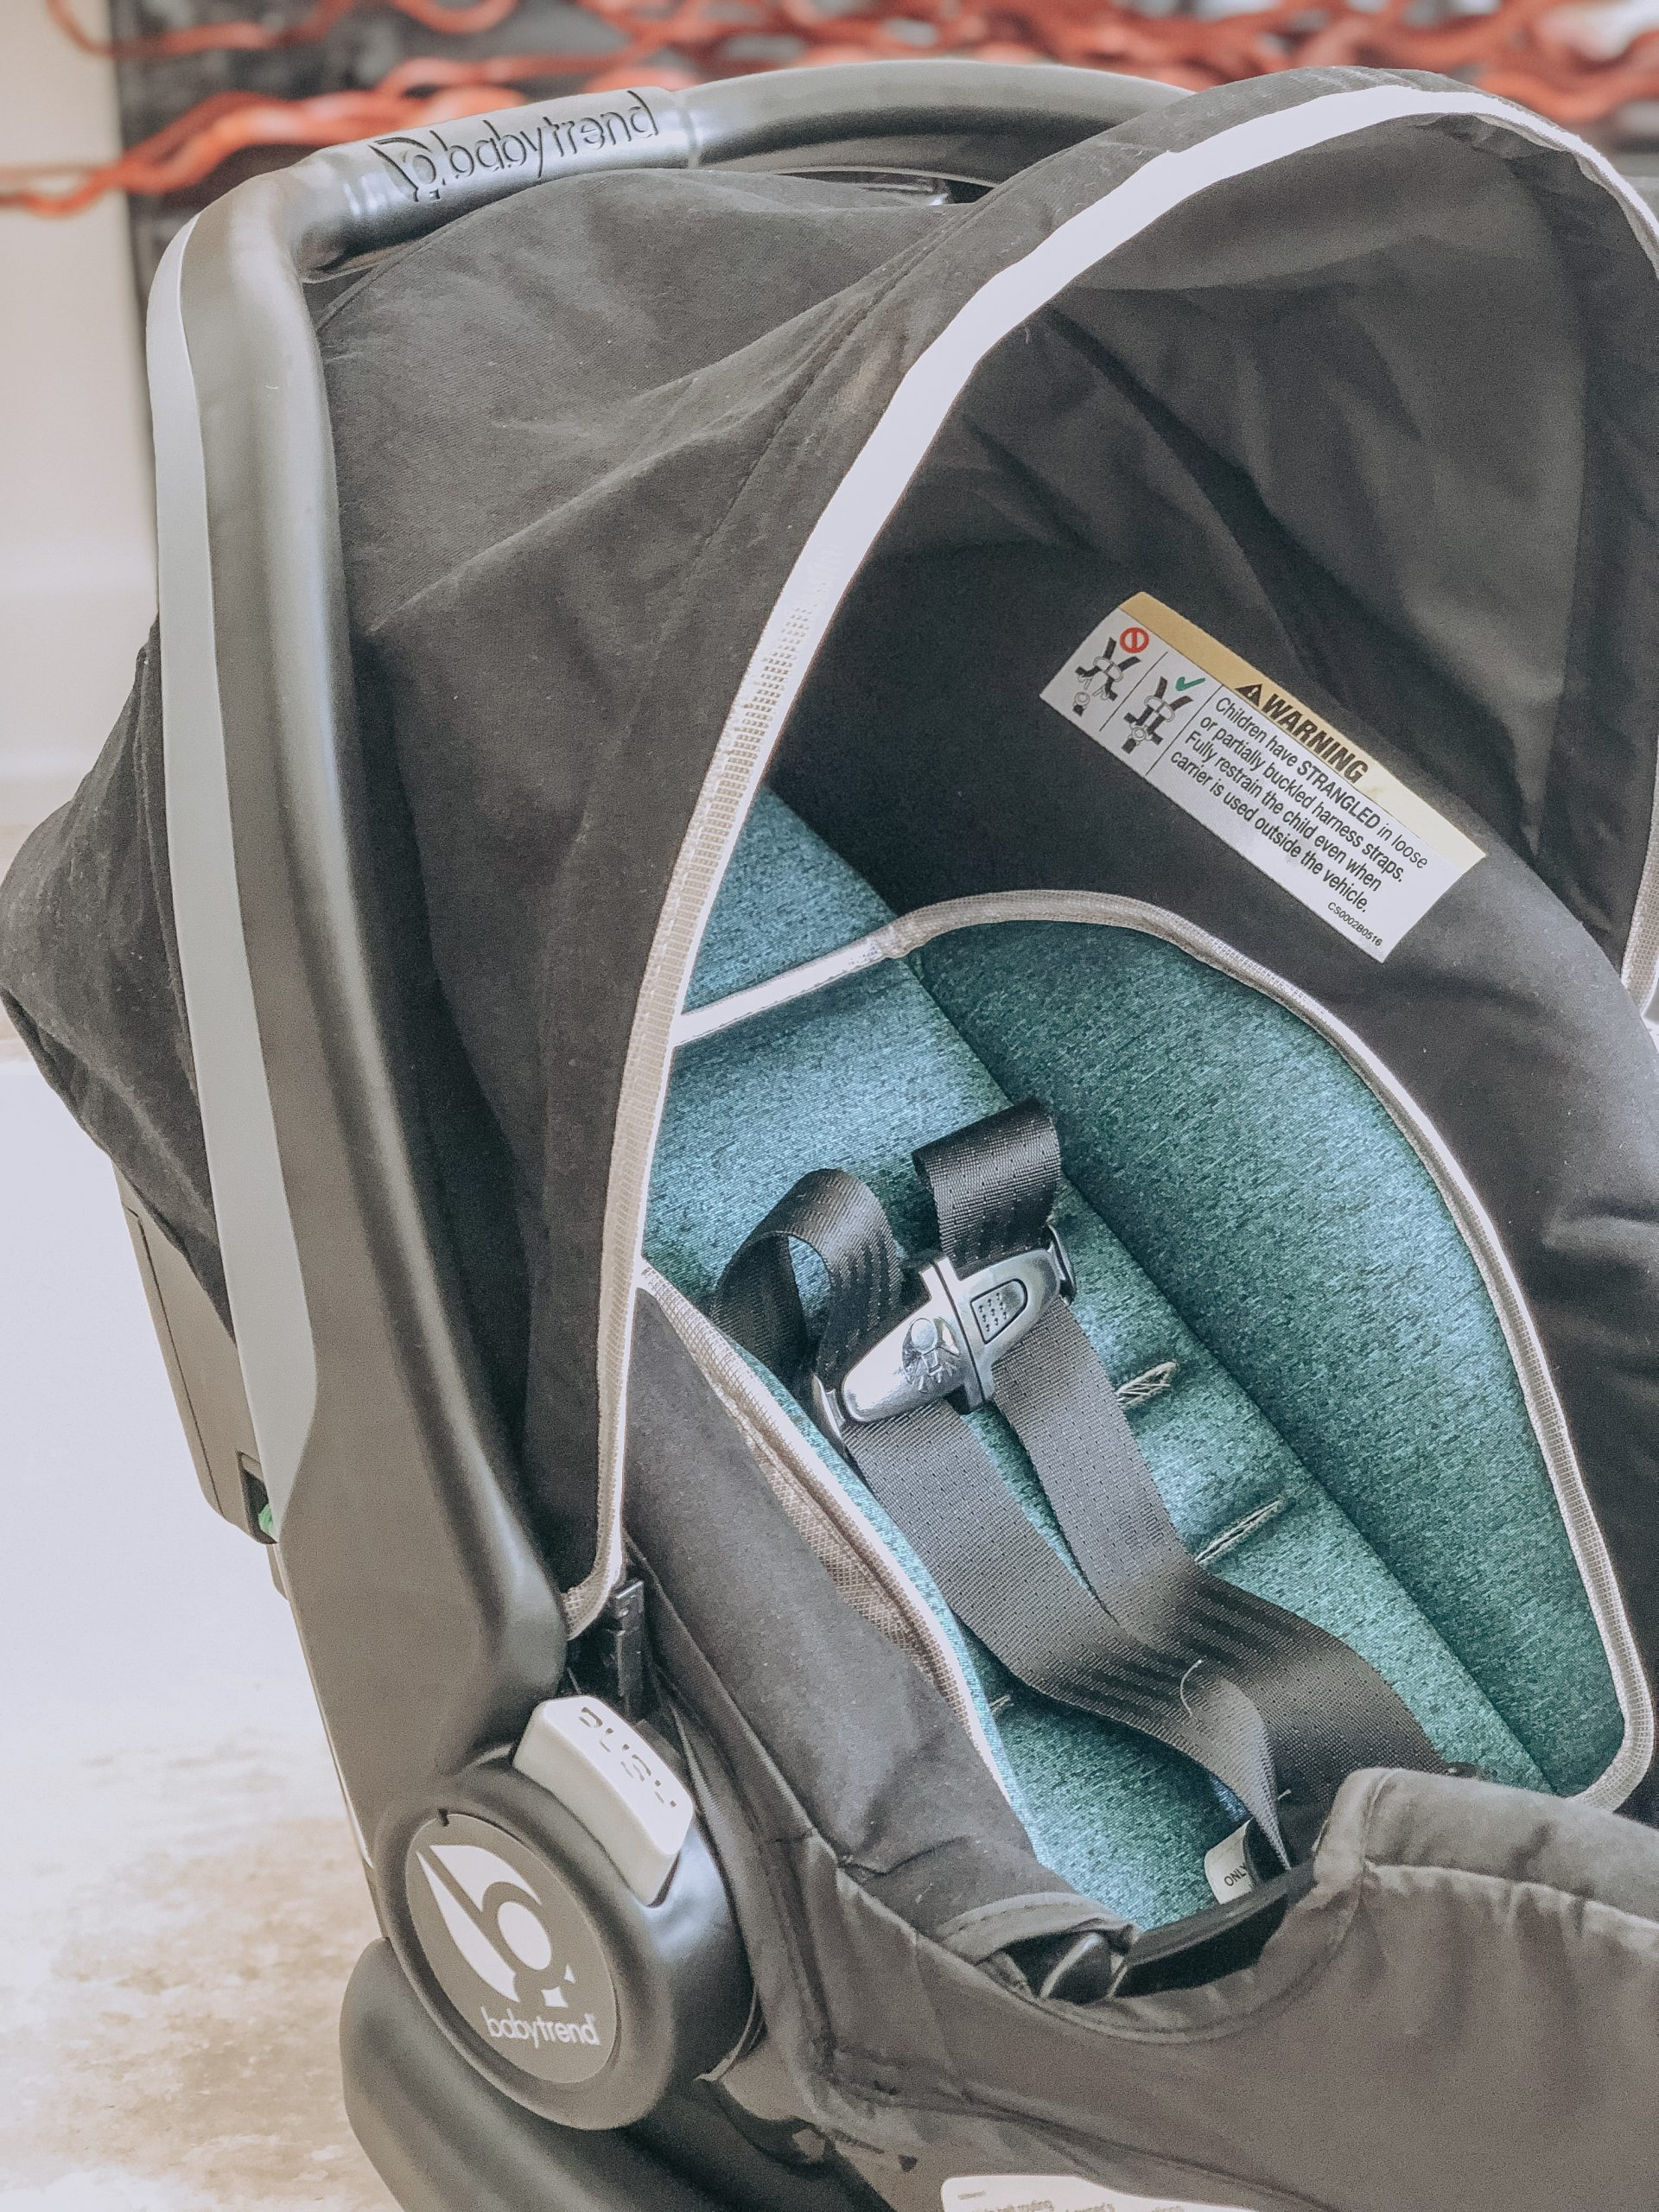 Tango Stroller Travel System review